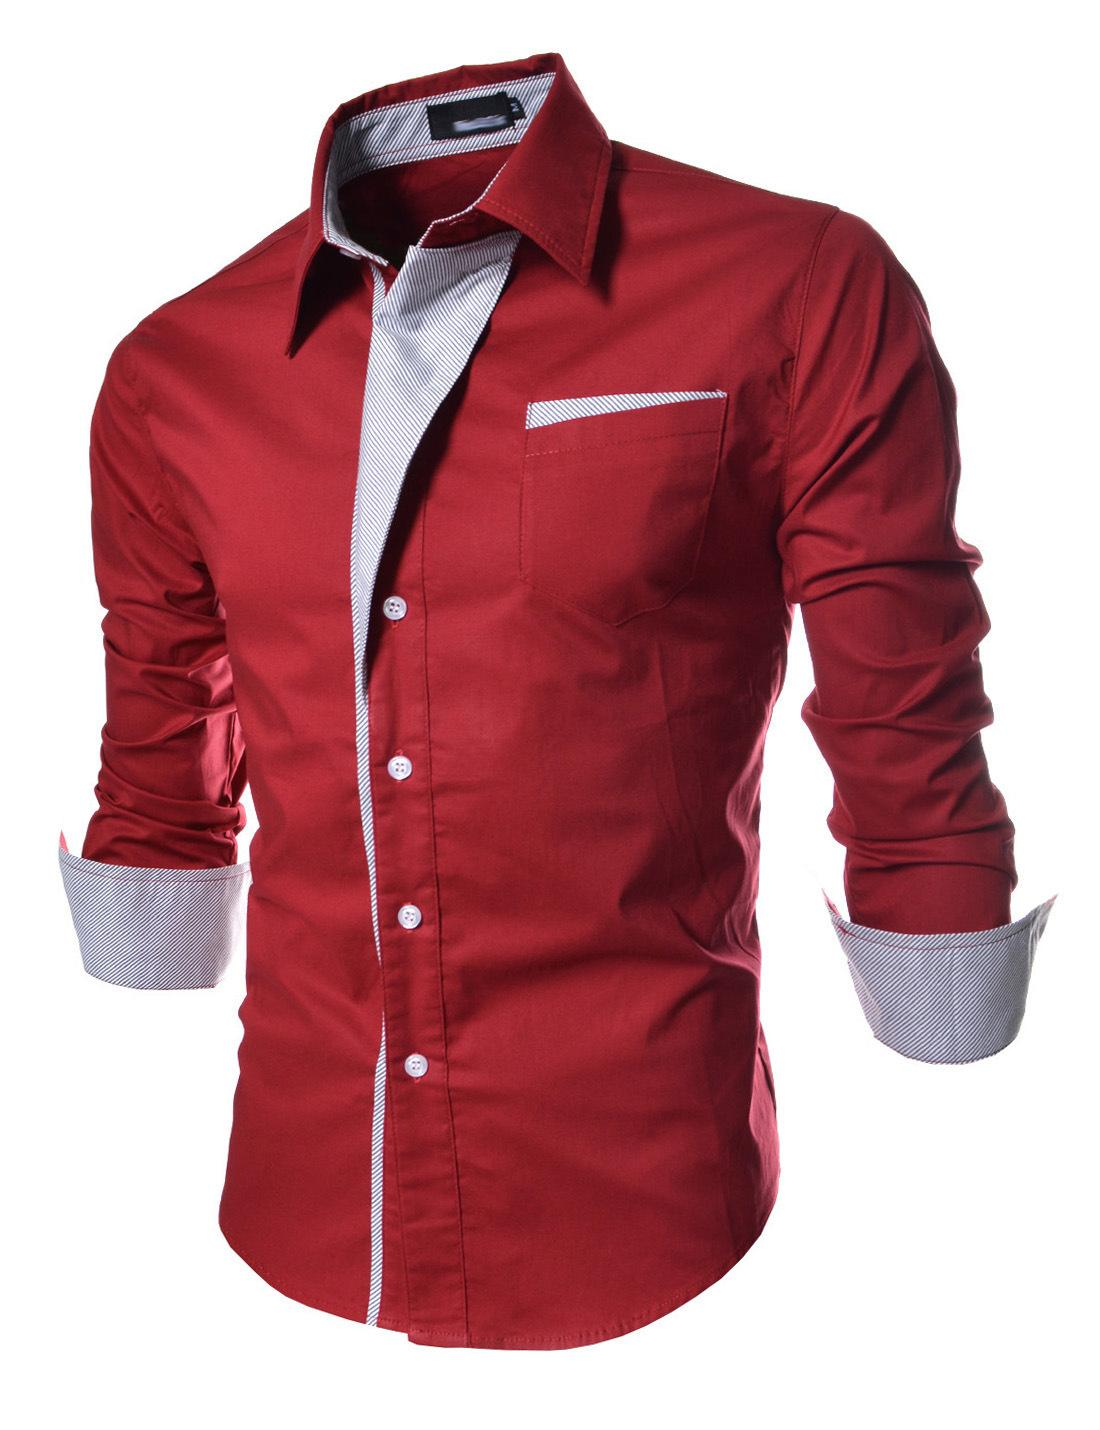 889717d9 Wholesale- Men's long sleeve shirt patchwork casual semi-formal style red  white black navy new fashion drop shipping